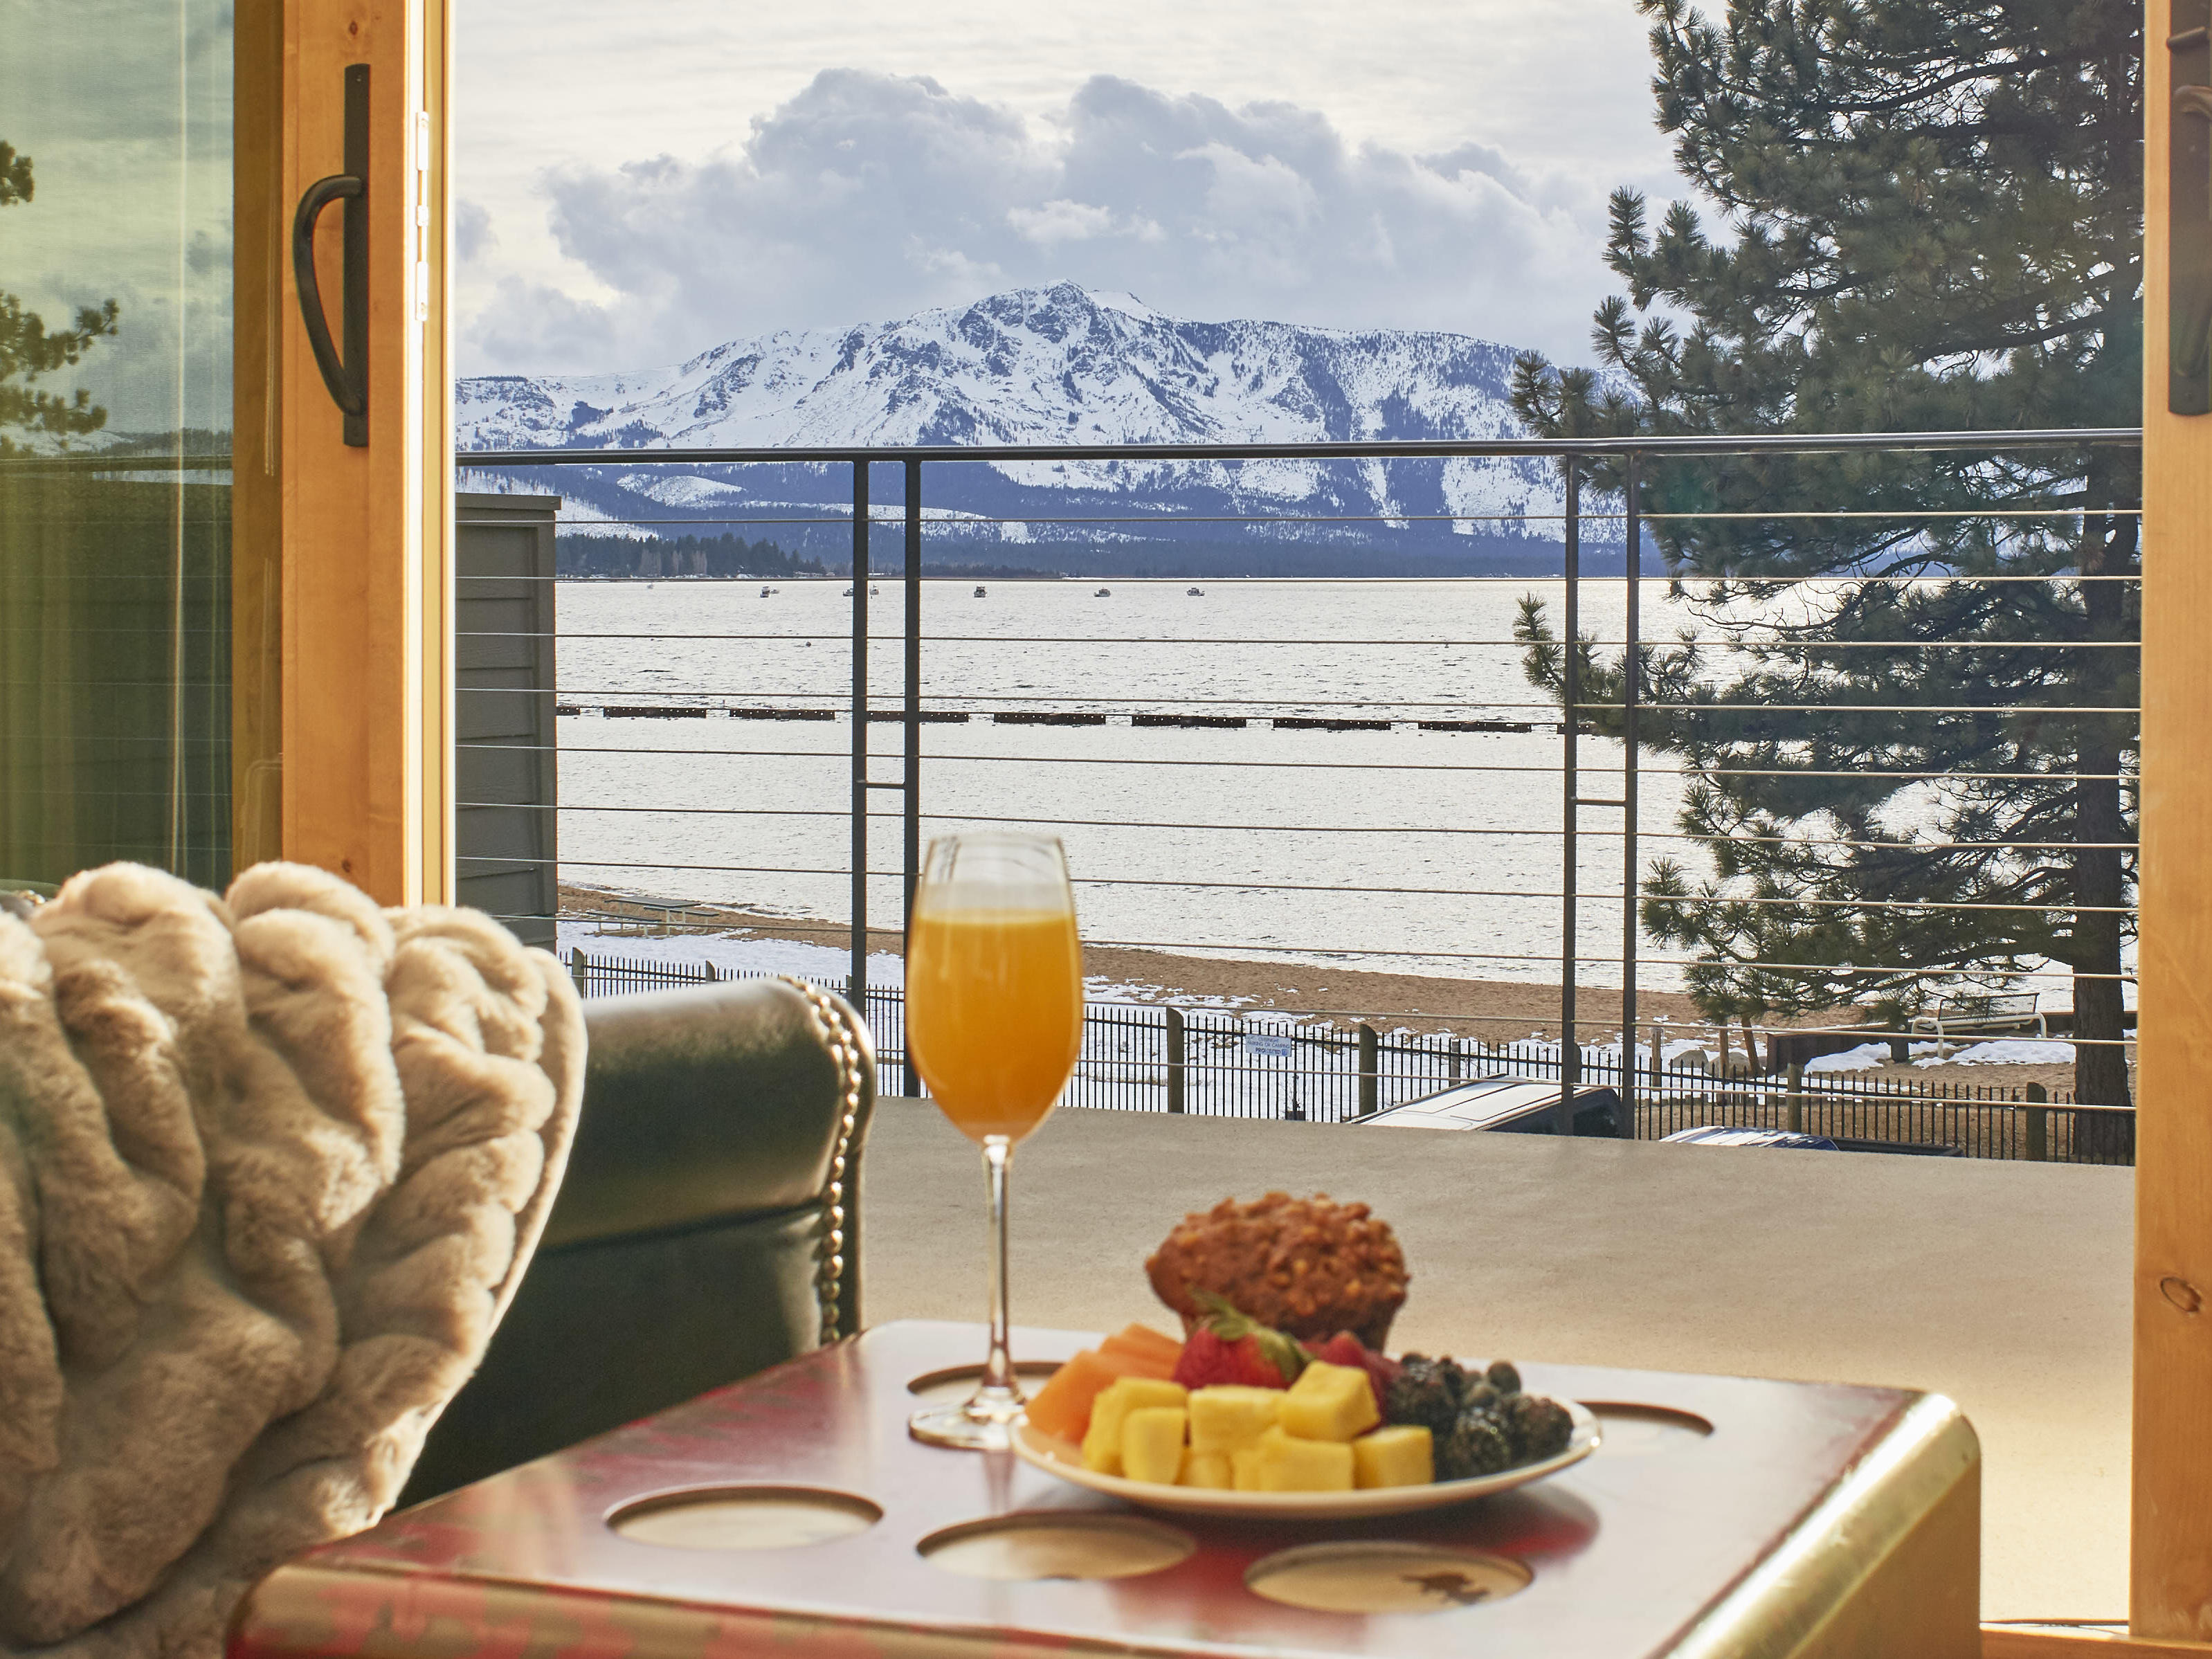 Breakfast with mimosa and lake view